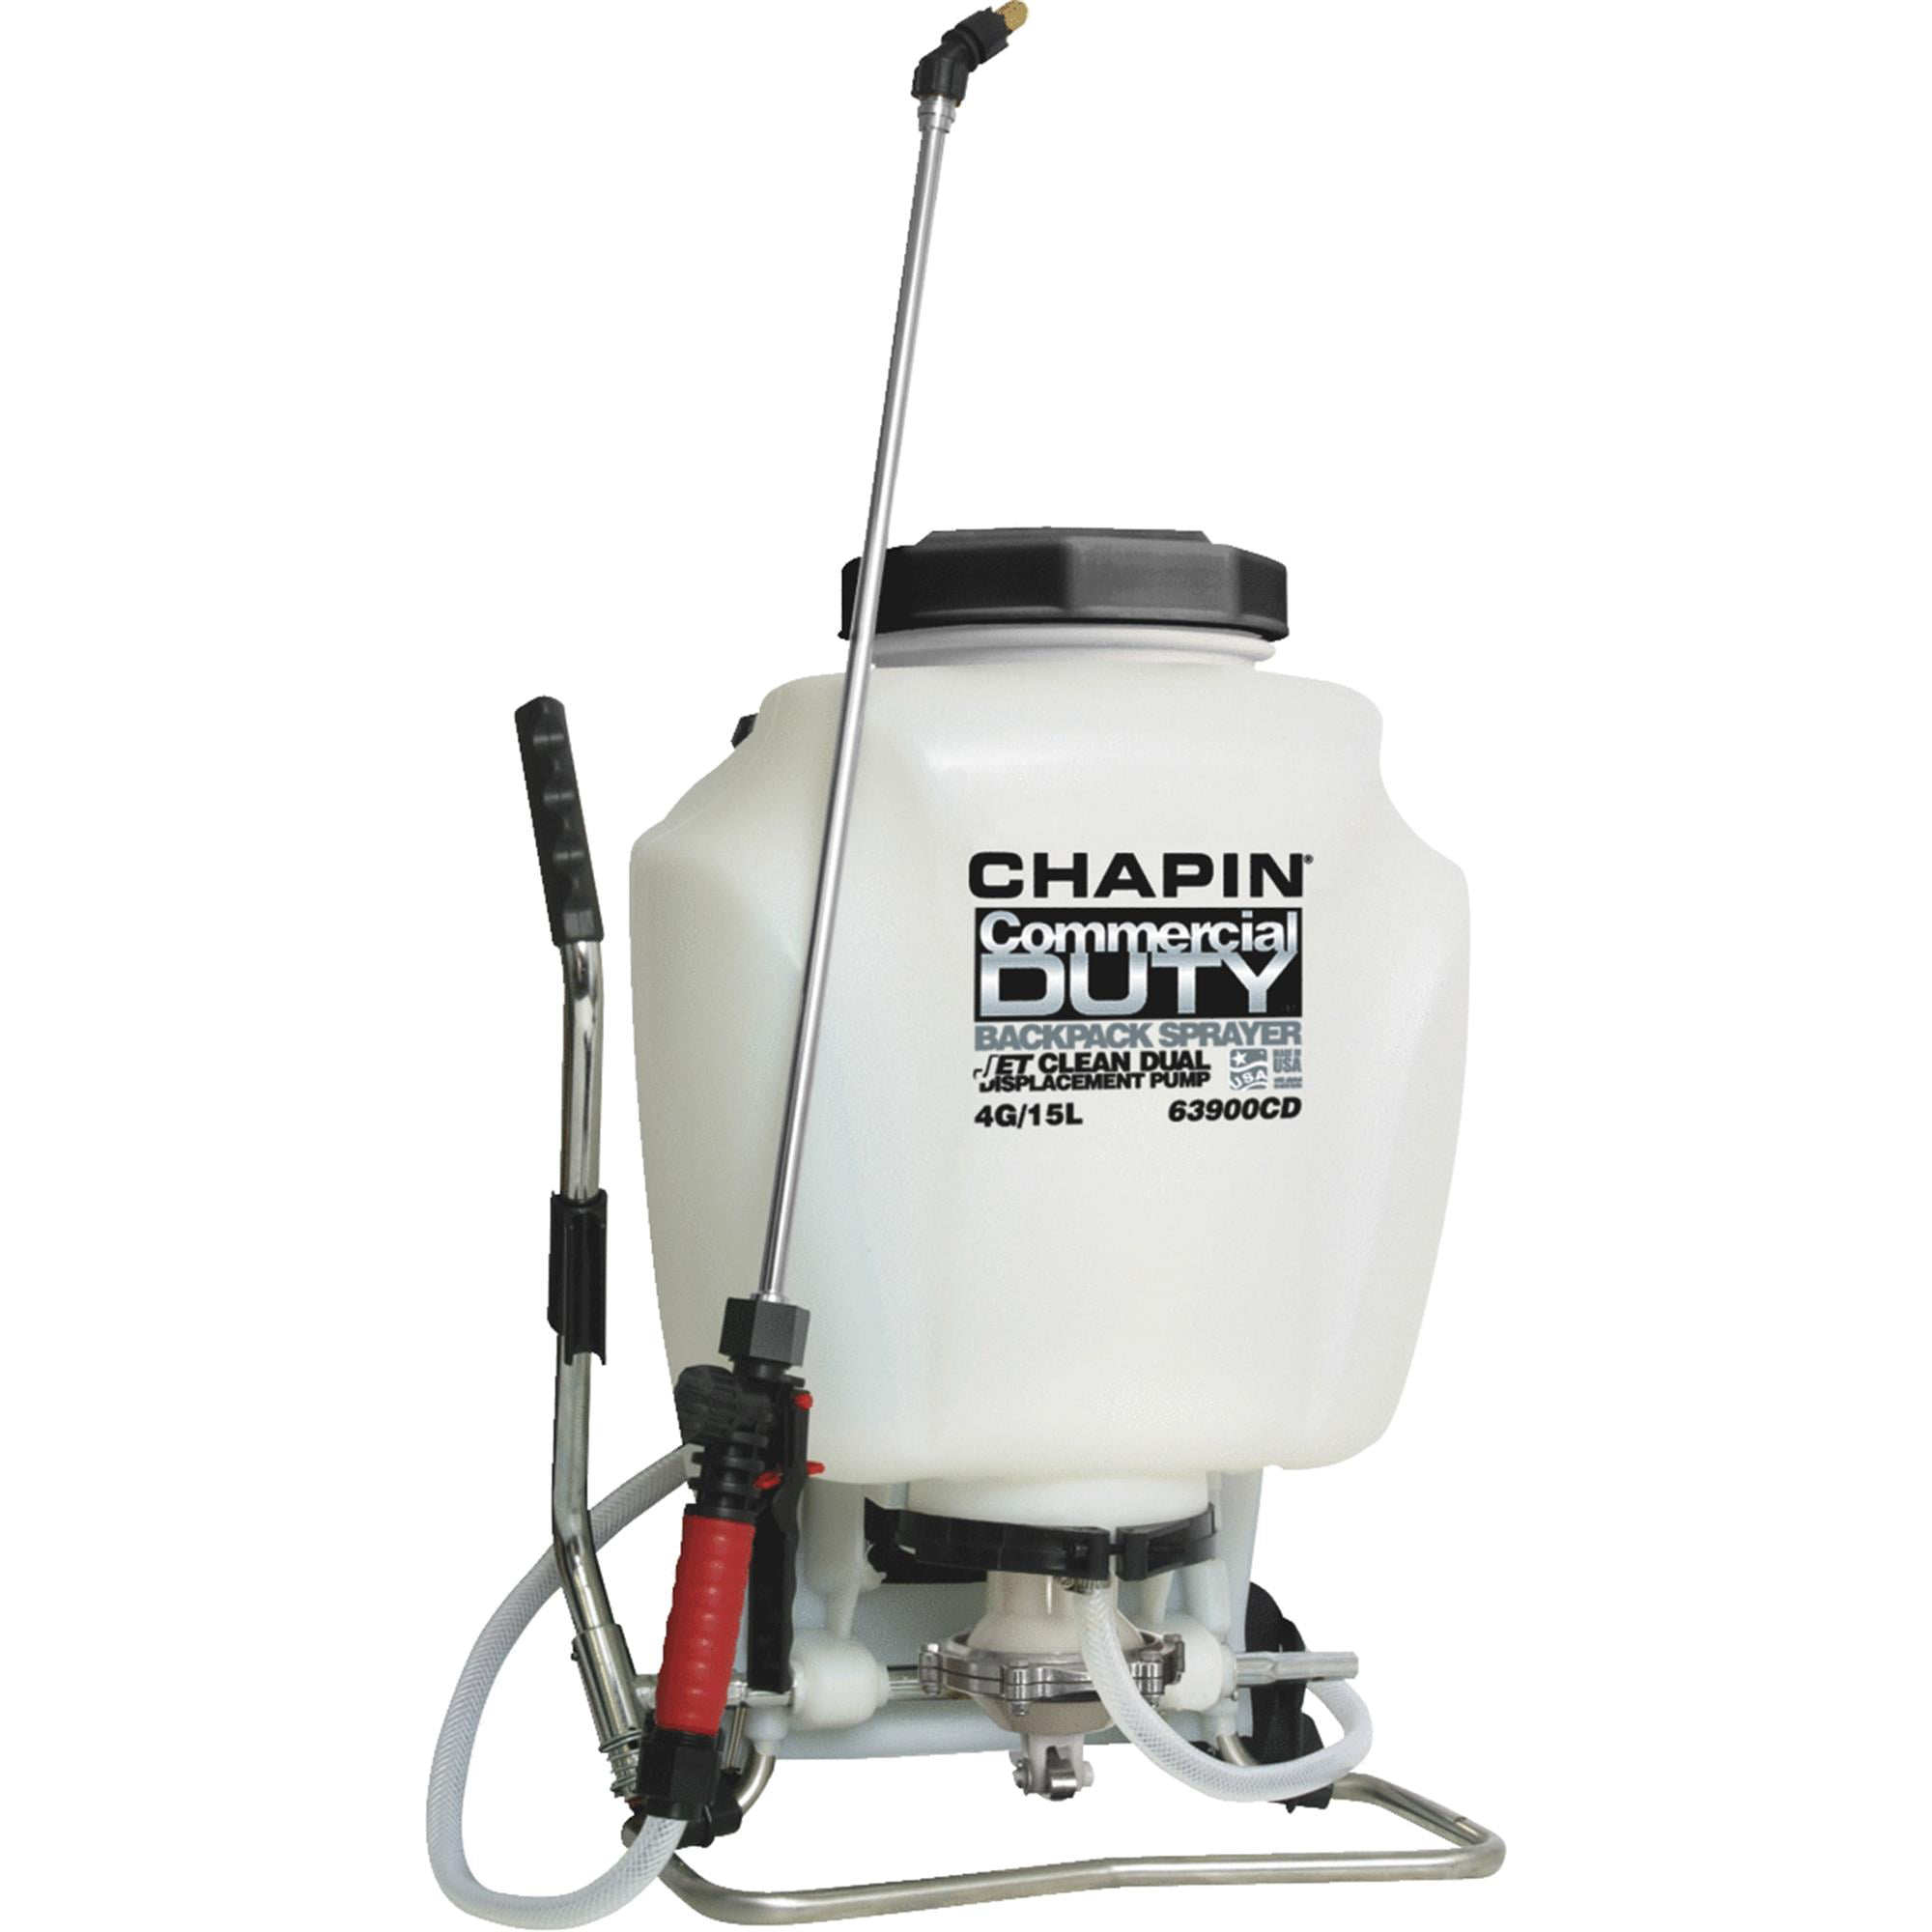 Chapin 63900 4-Gallon JetClean Self Cleaning Wide Mouth Backpack Sprayer by Chapin